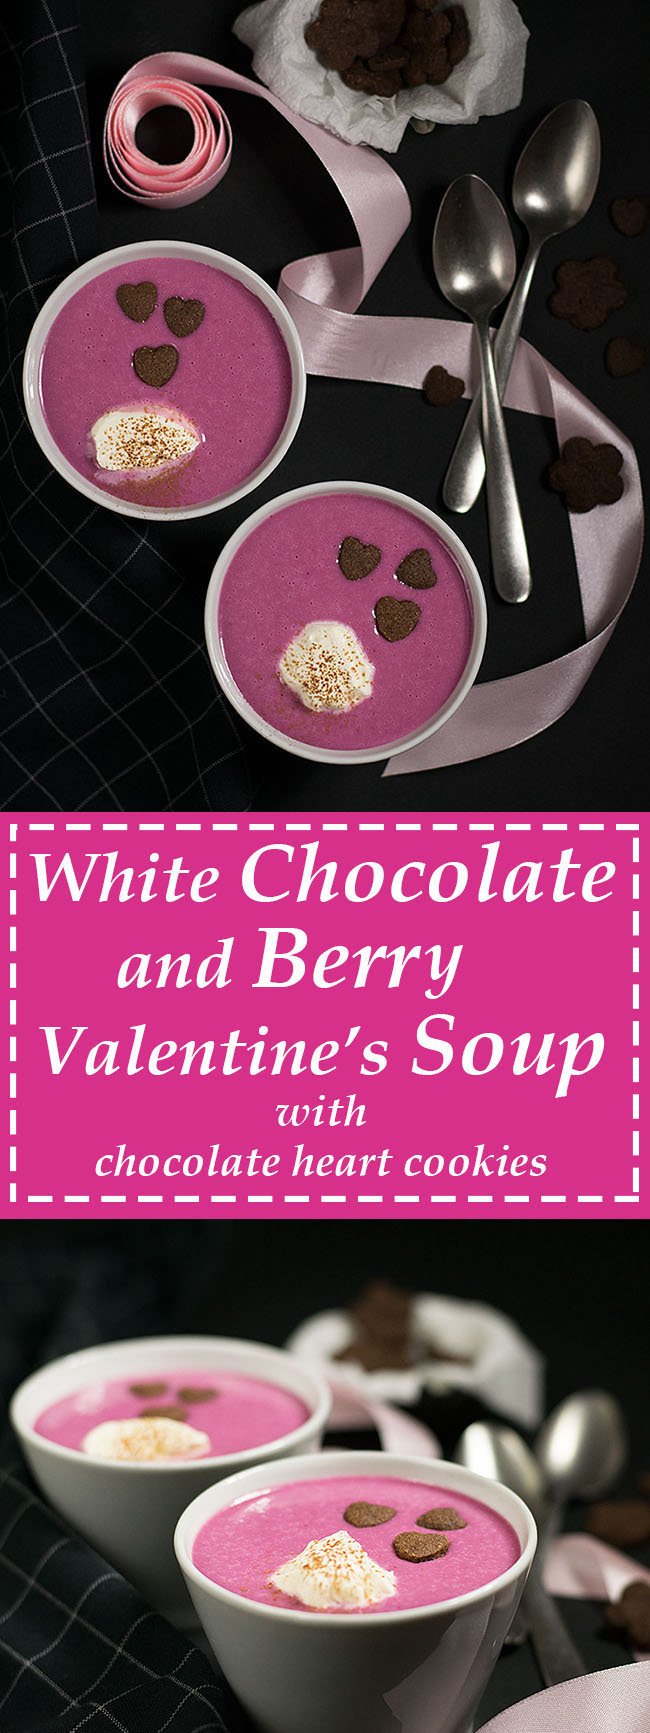 white chocolate & berry Valentine's soup 6